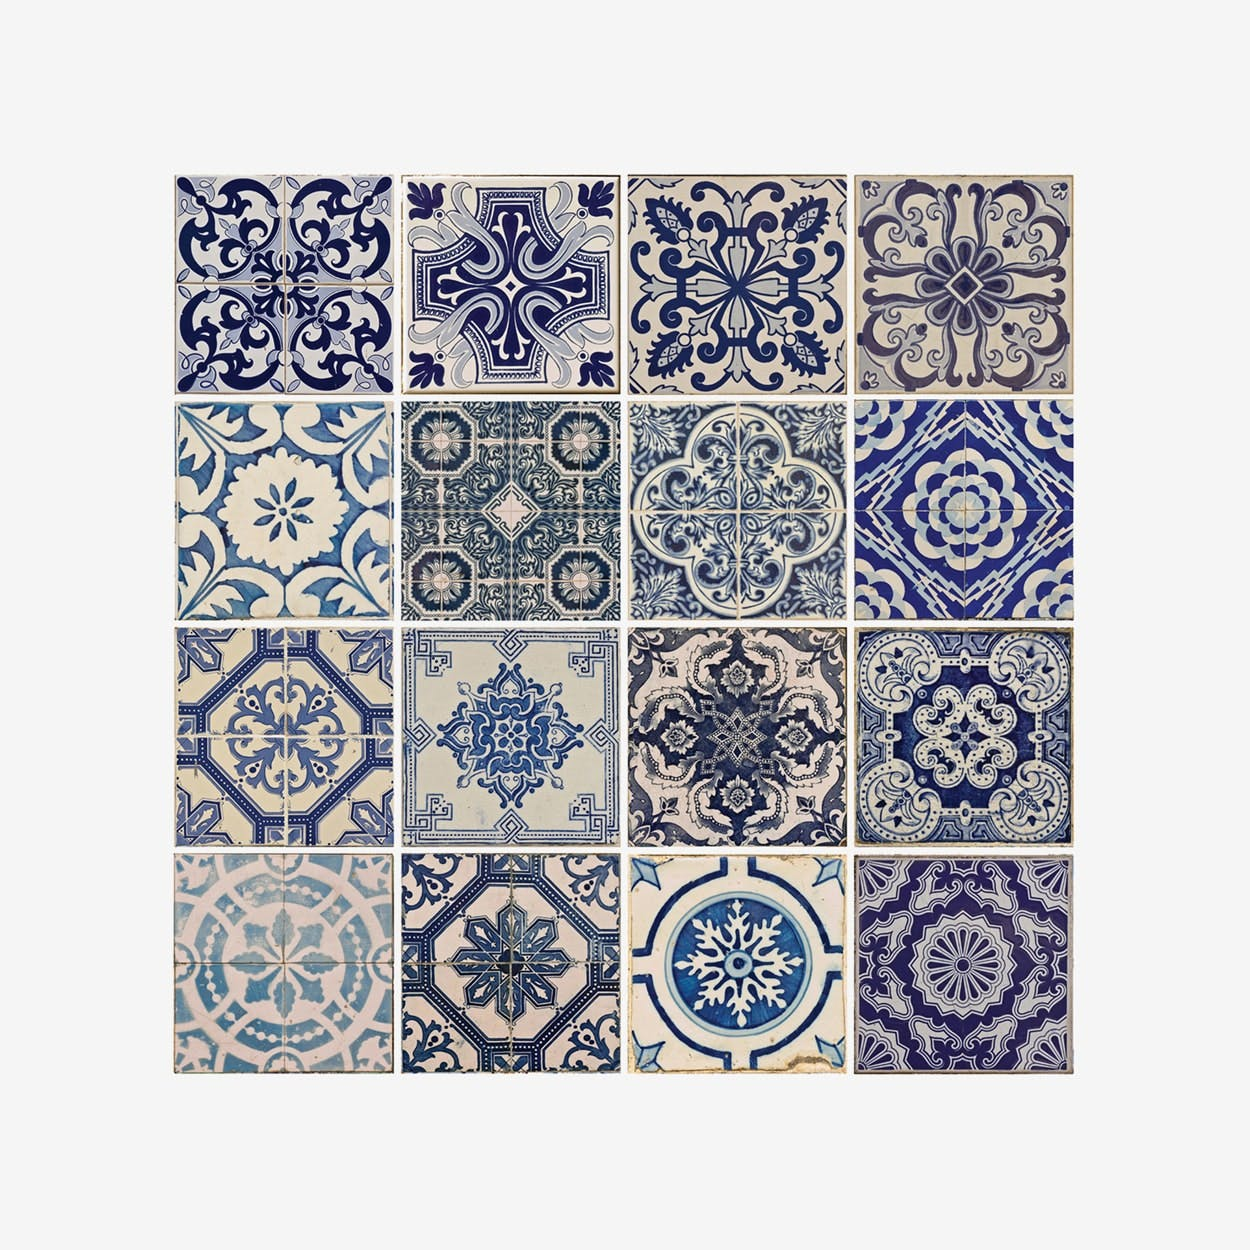 Spanish Blue Tile Pattern Self-adhesive Decal - Walplus